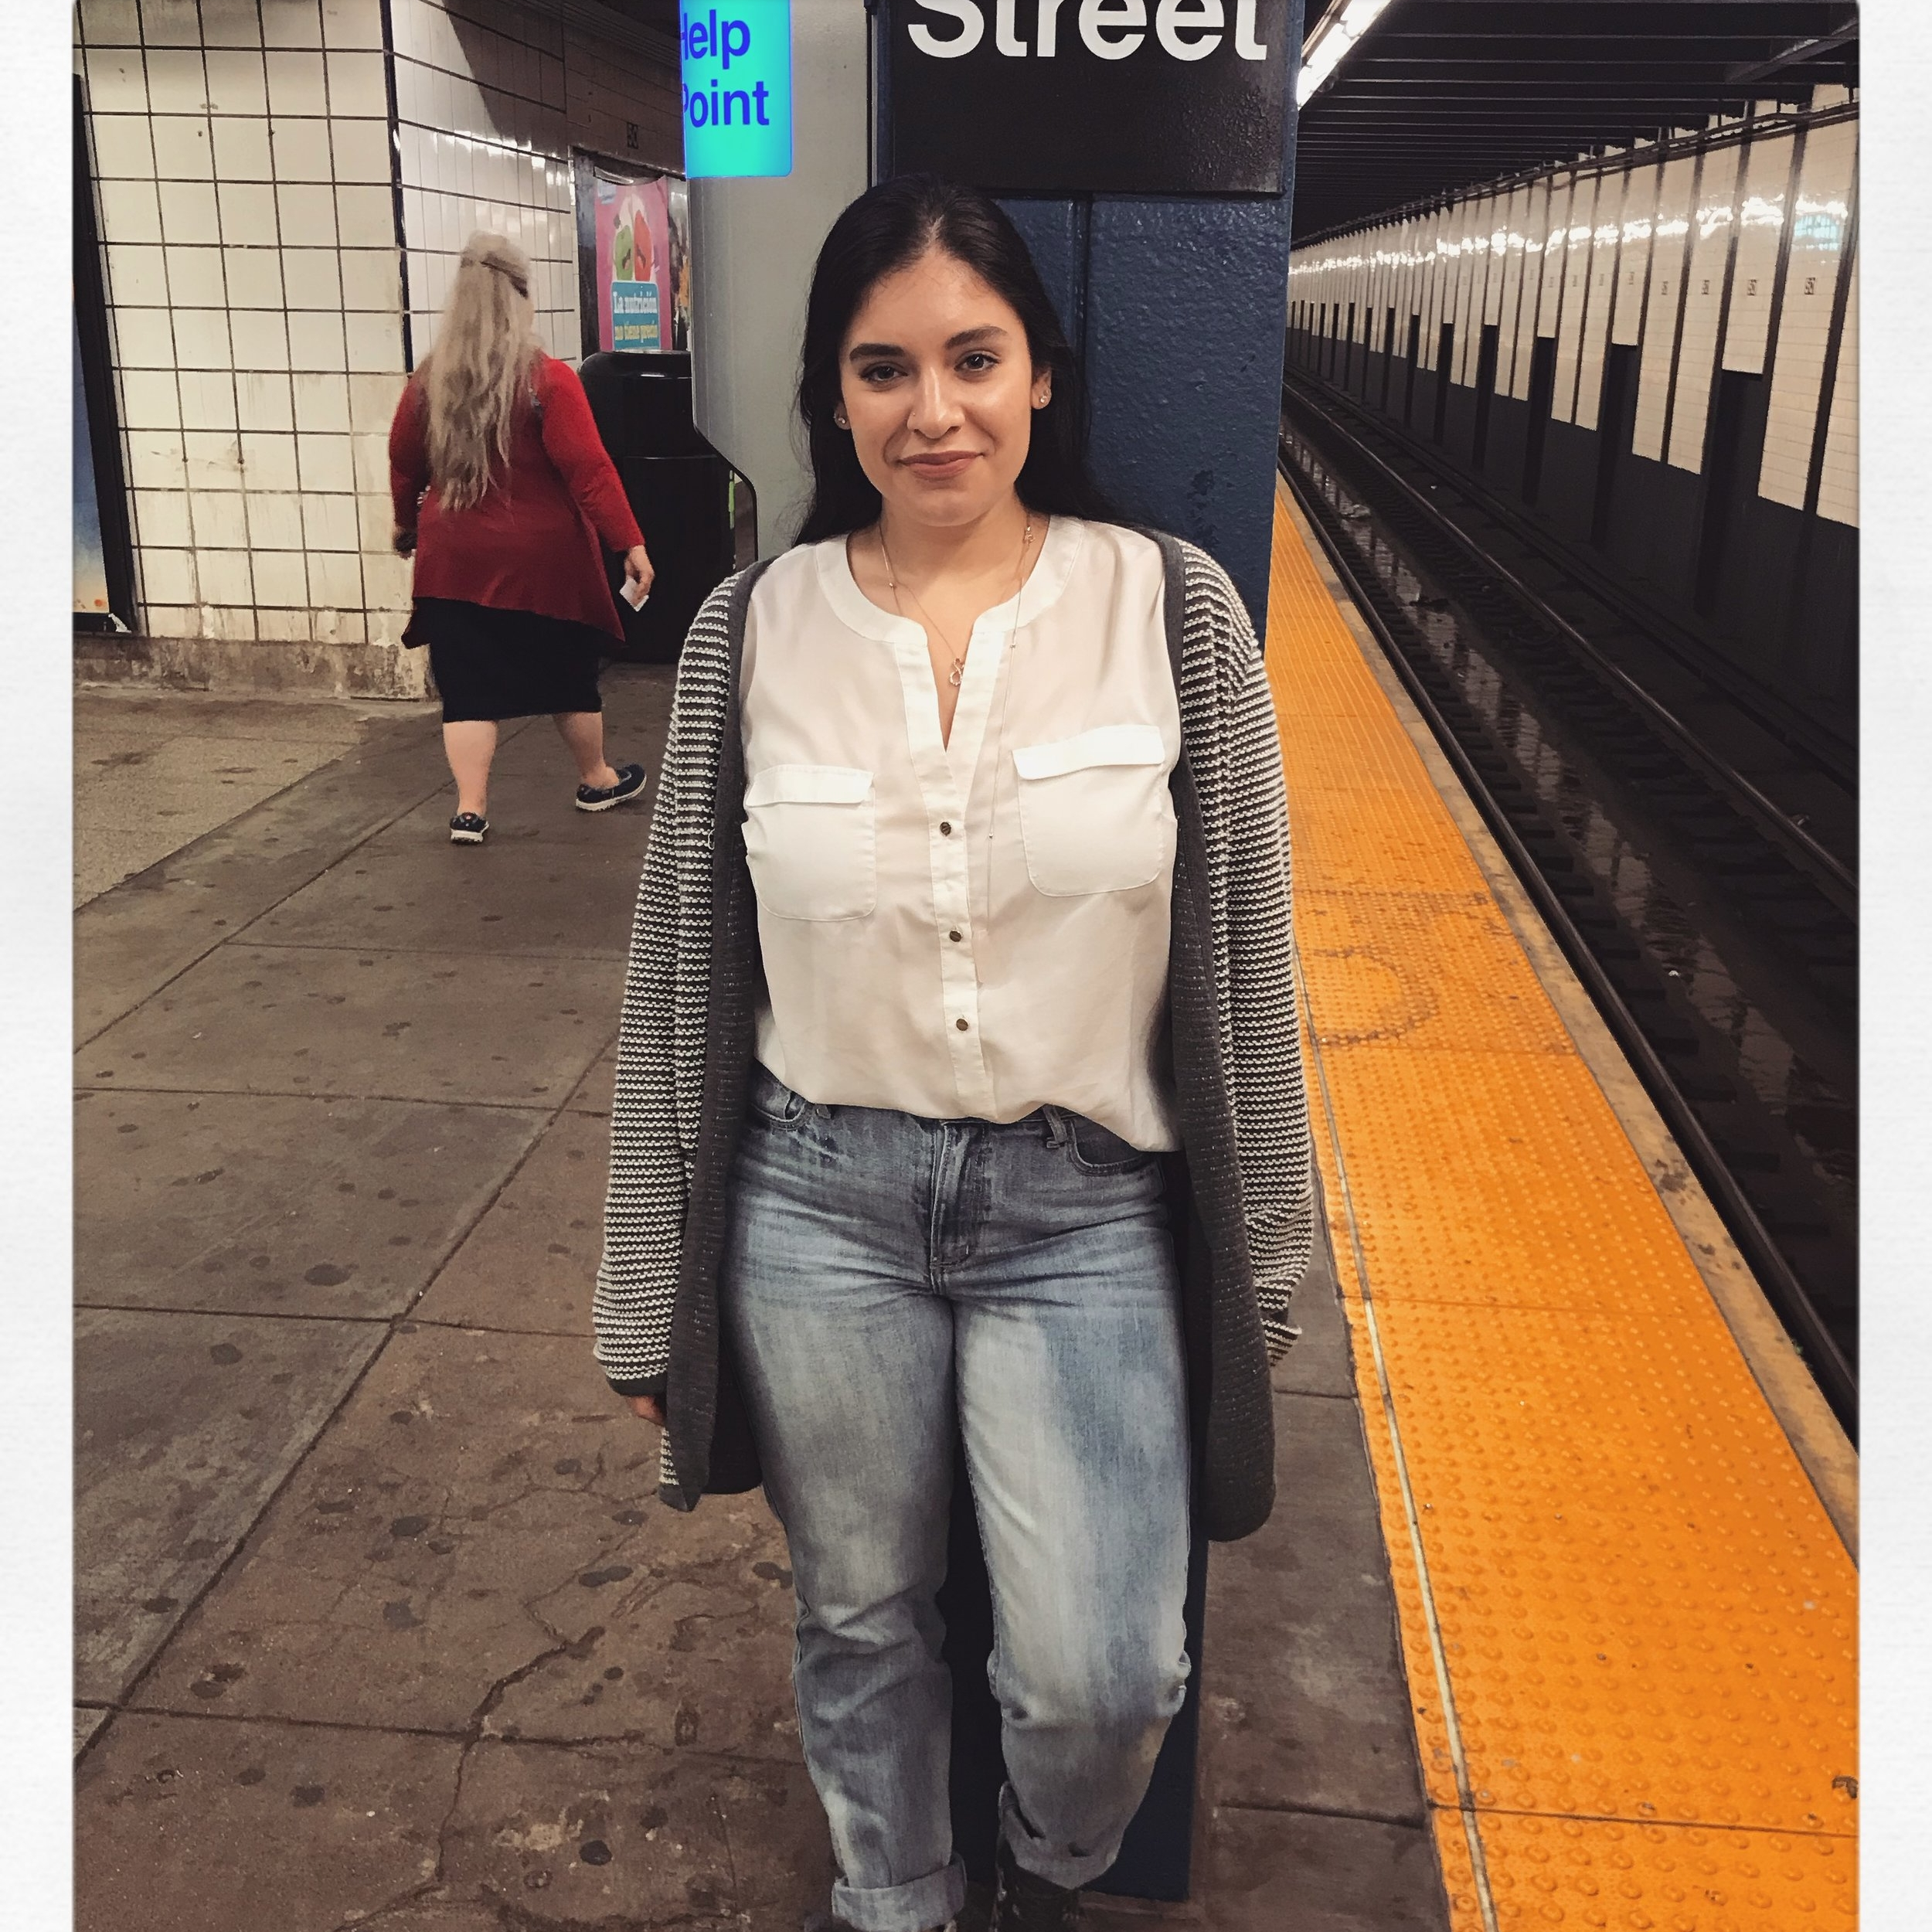 Culture Contributor  Brianna Torres  Brianna Torres is a freelance journalist from Long Island, New York. With a major in Music Industry and minor in professional writing, Brianna loves to write about all topics concerning entertainment, music, and culture. On her free time, you can catch her writing poetry on her Instagram account @bri_poetry.  Feel free to check out her professional work at  http://torresbrianna16.wix.com/briannamtorres  or shoot an email out to  torresbrianna16@gmail.com .